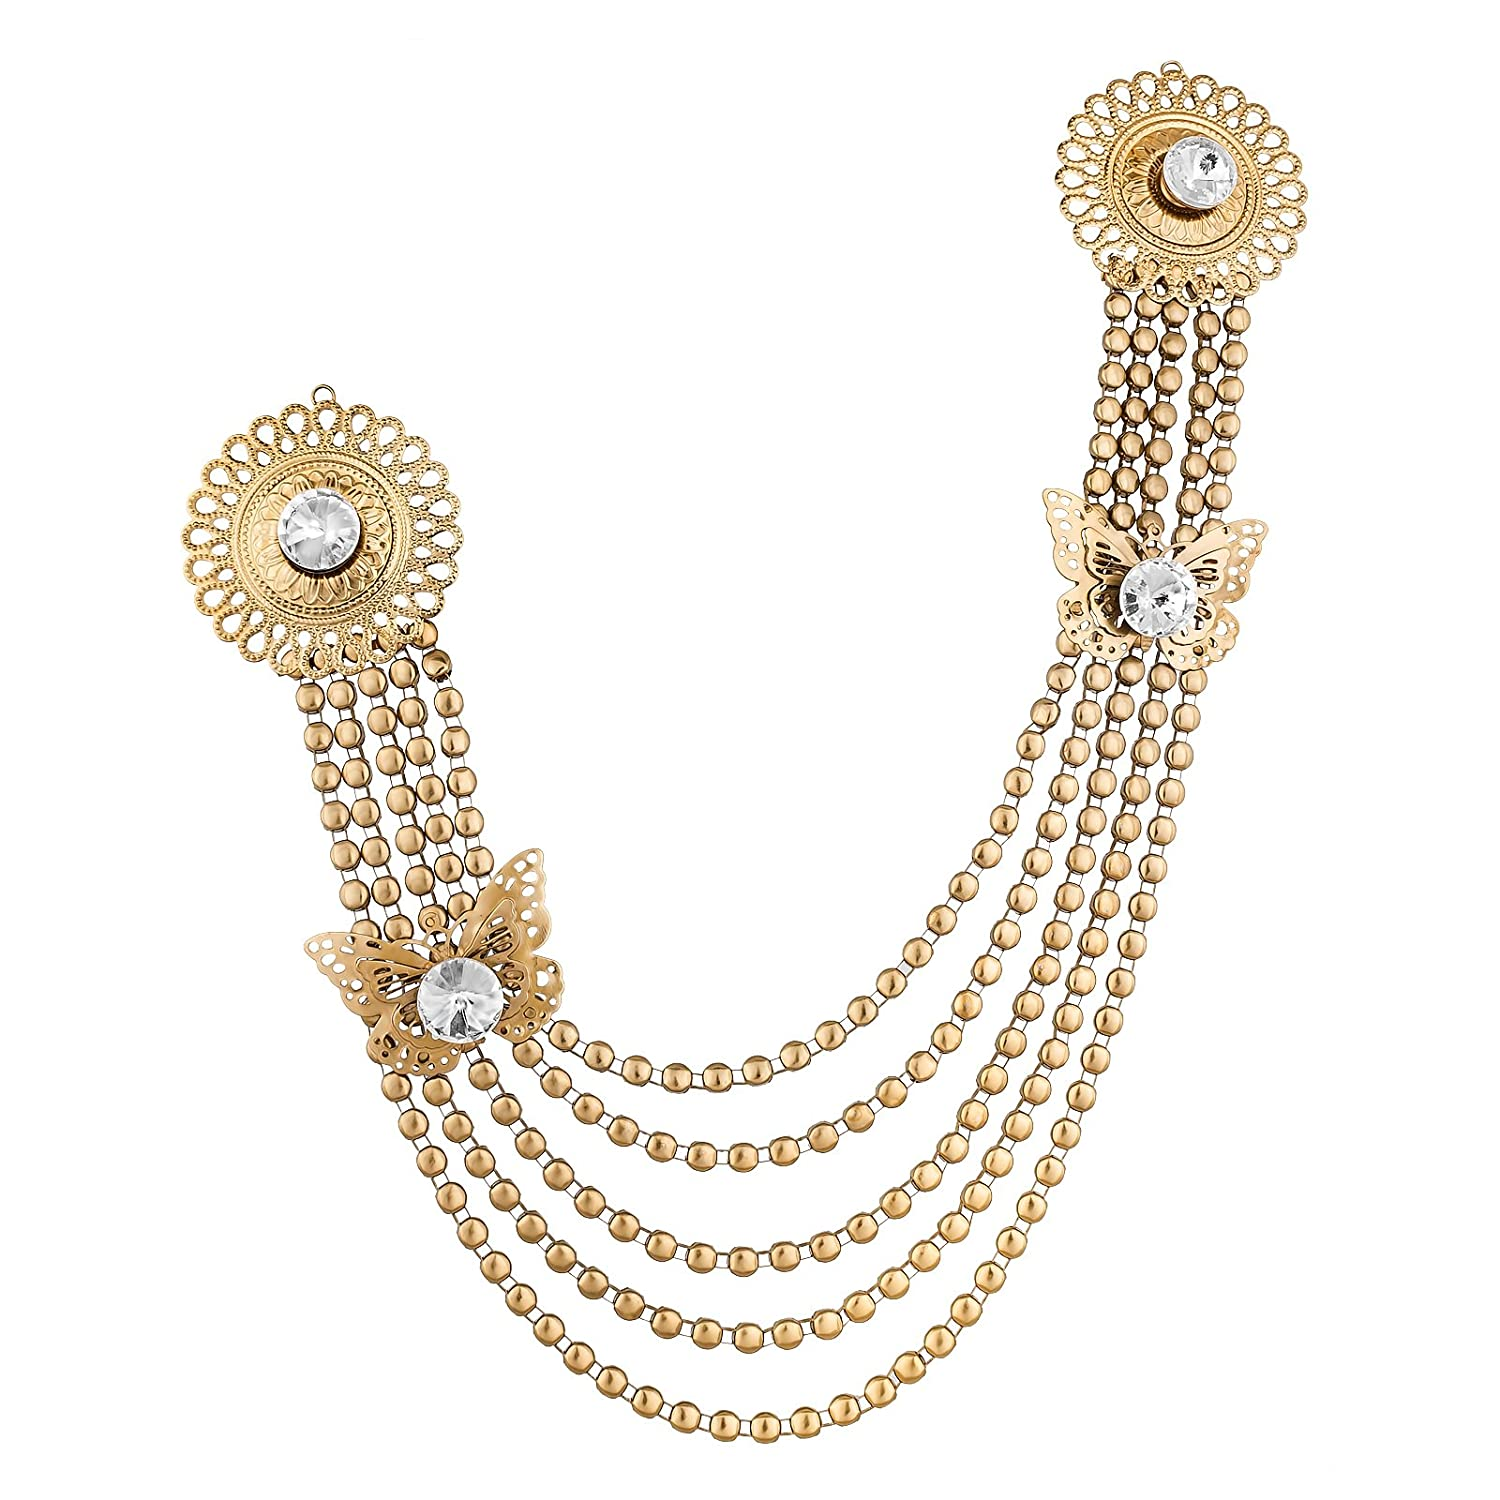 buy brooch india online fourseven dwishakti jewellery